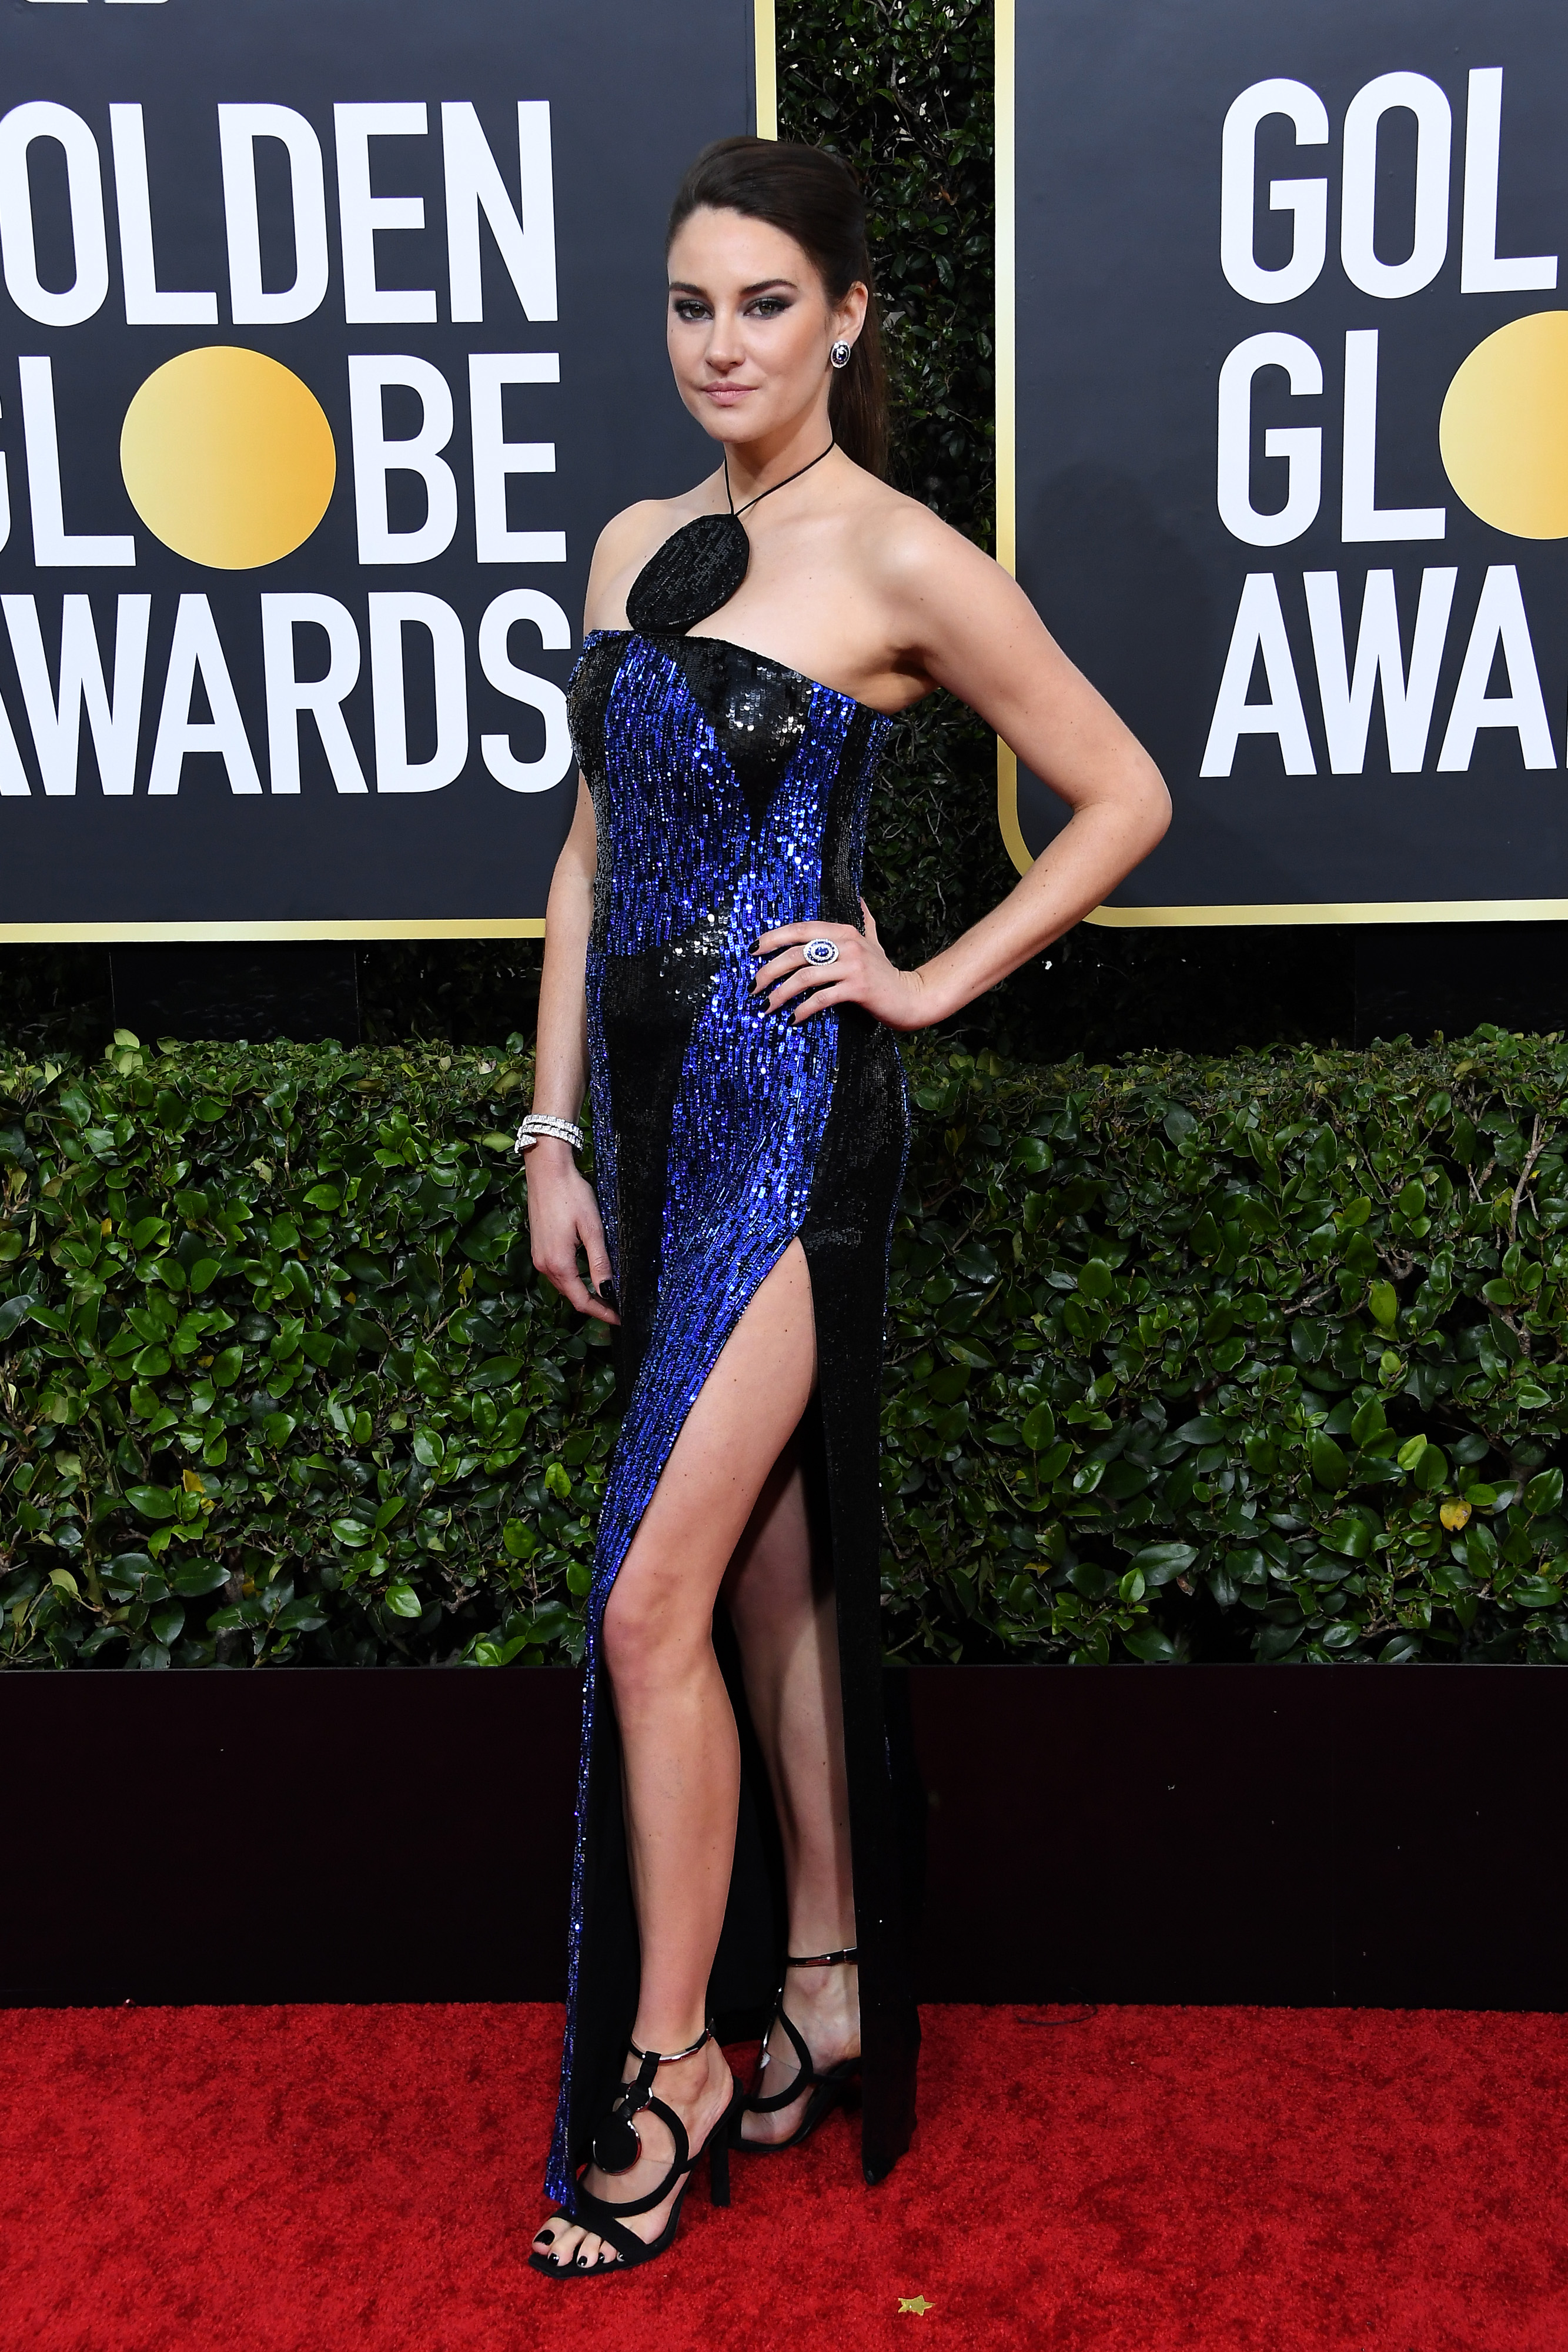 BEVERLY HILLS, CALIFORNIA - JANUARY 05: Shailene Woodley attends the 77th Annual Golden Globe Awards at The Beverly Hilton Hotel on January 05, 2020 in Beverly Hills, California. (Photo by Steve Granitz/WireImage)